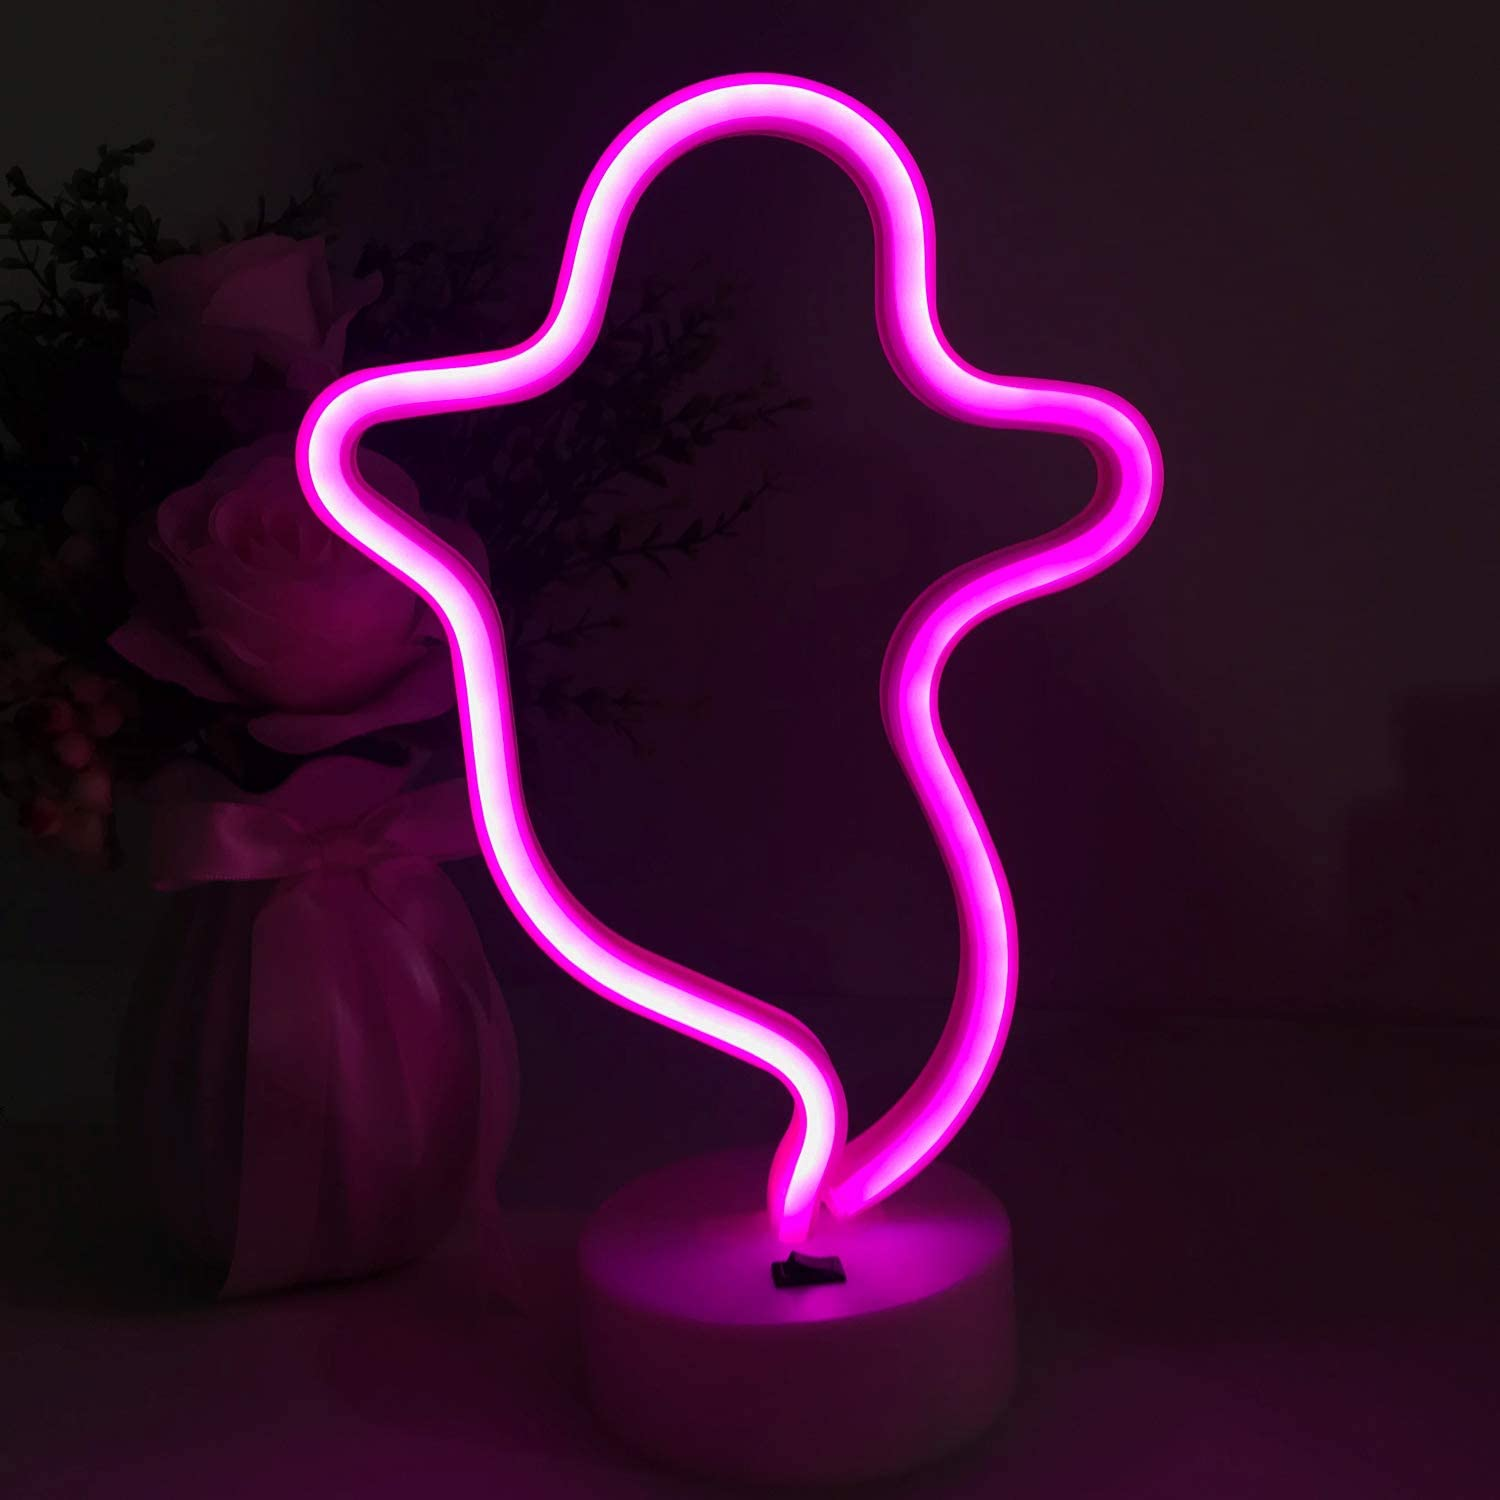 Ghost Shaped Halloween Decoration LED Neon Sign Light. Indoor Night Table Lamp with Battery or USB Powered for Party, Living Room, Family Room, Kids Room, Wedding, Home Decoration. (Pink Ghost)